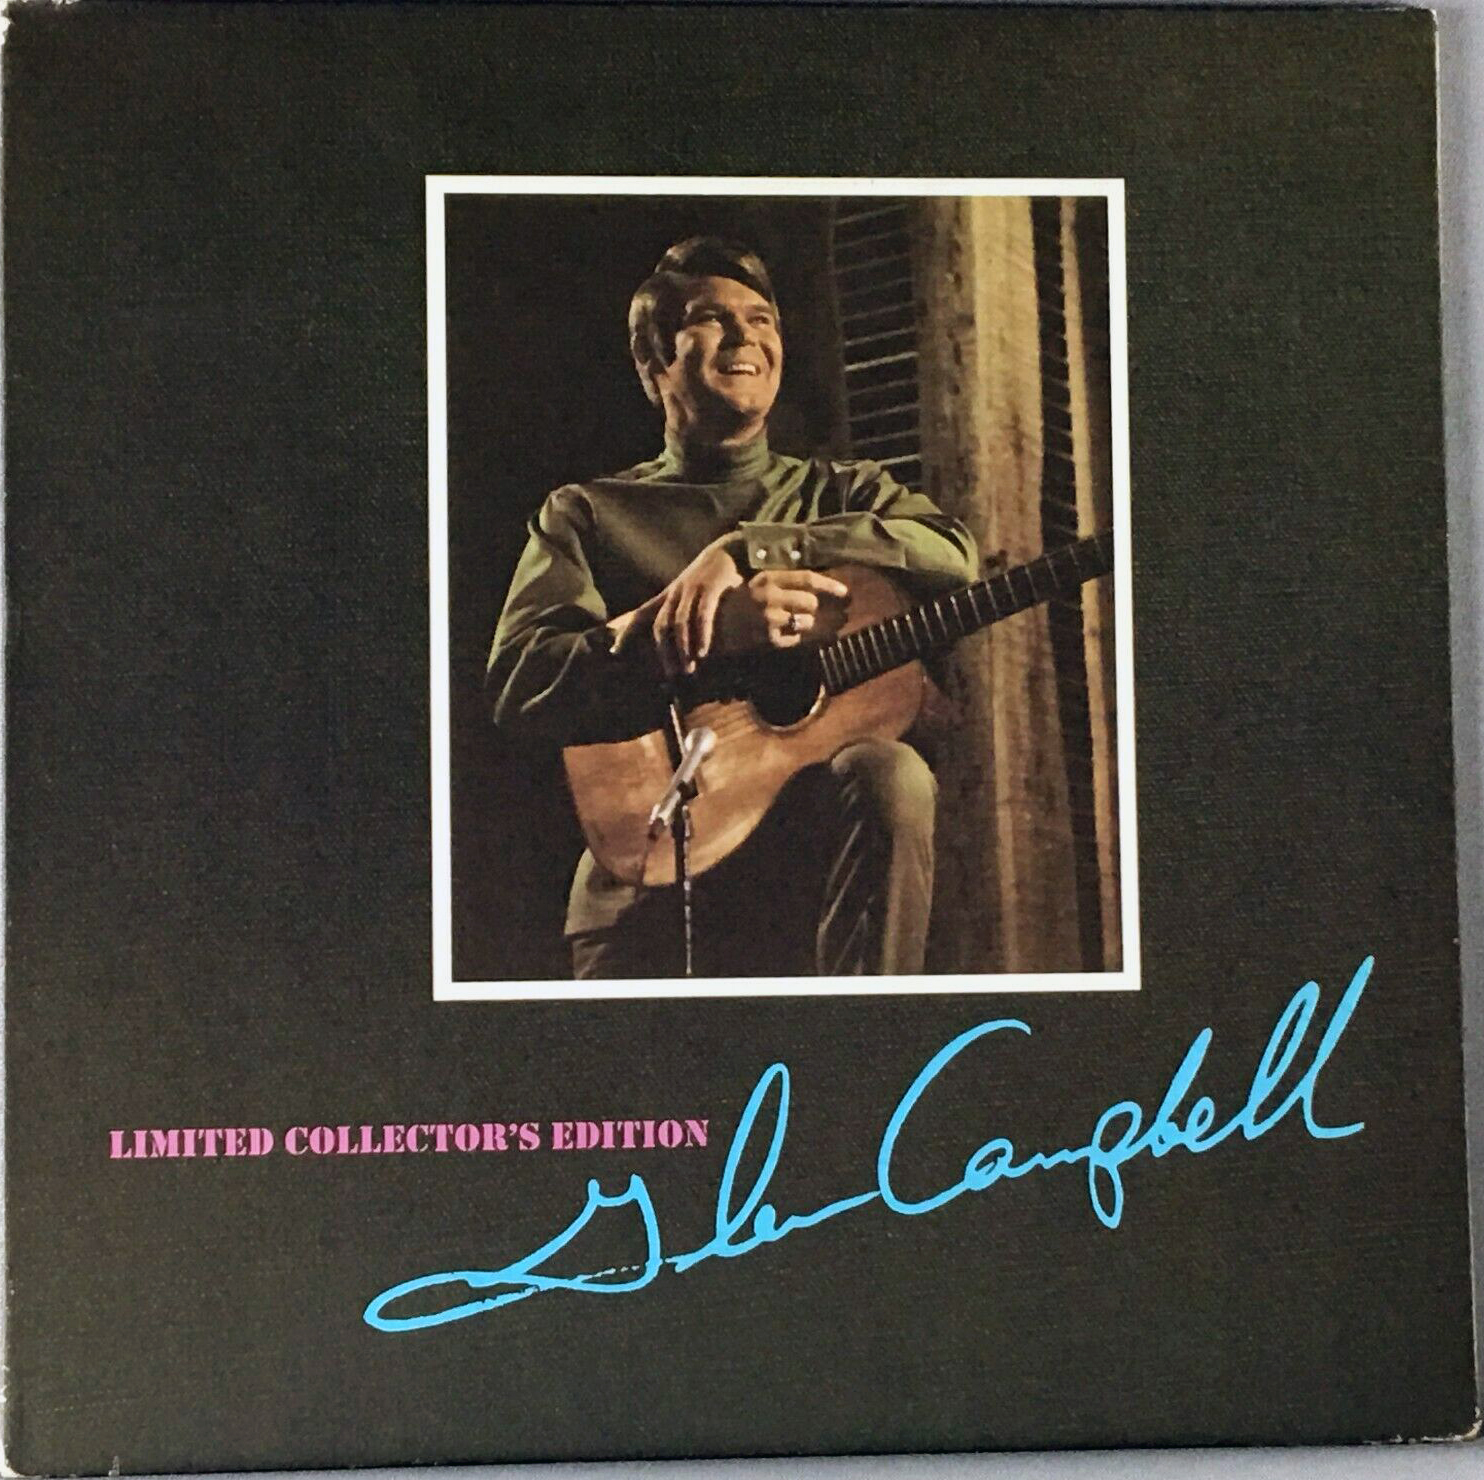 Limited Collectors Edition Glen Campbell.jpg